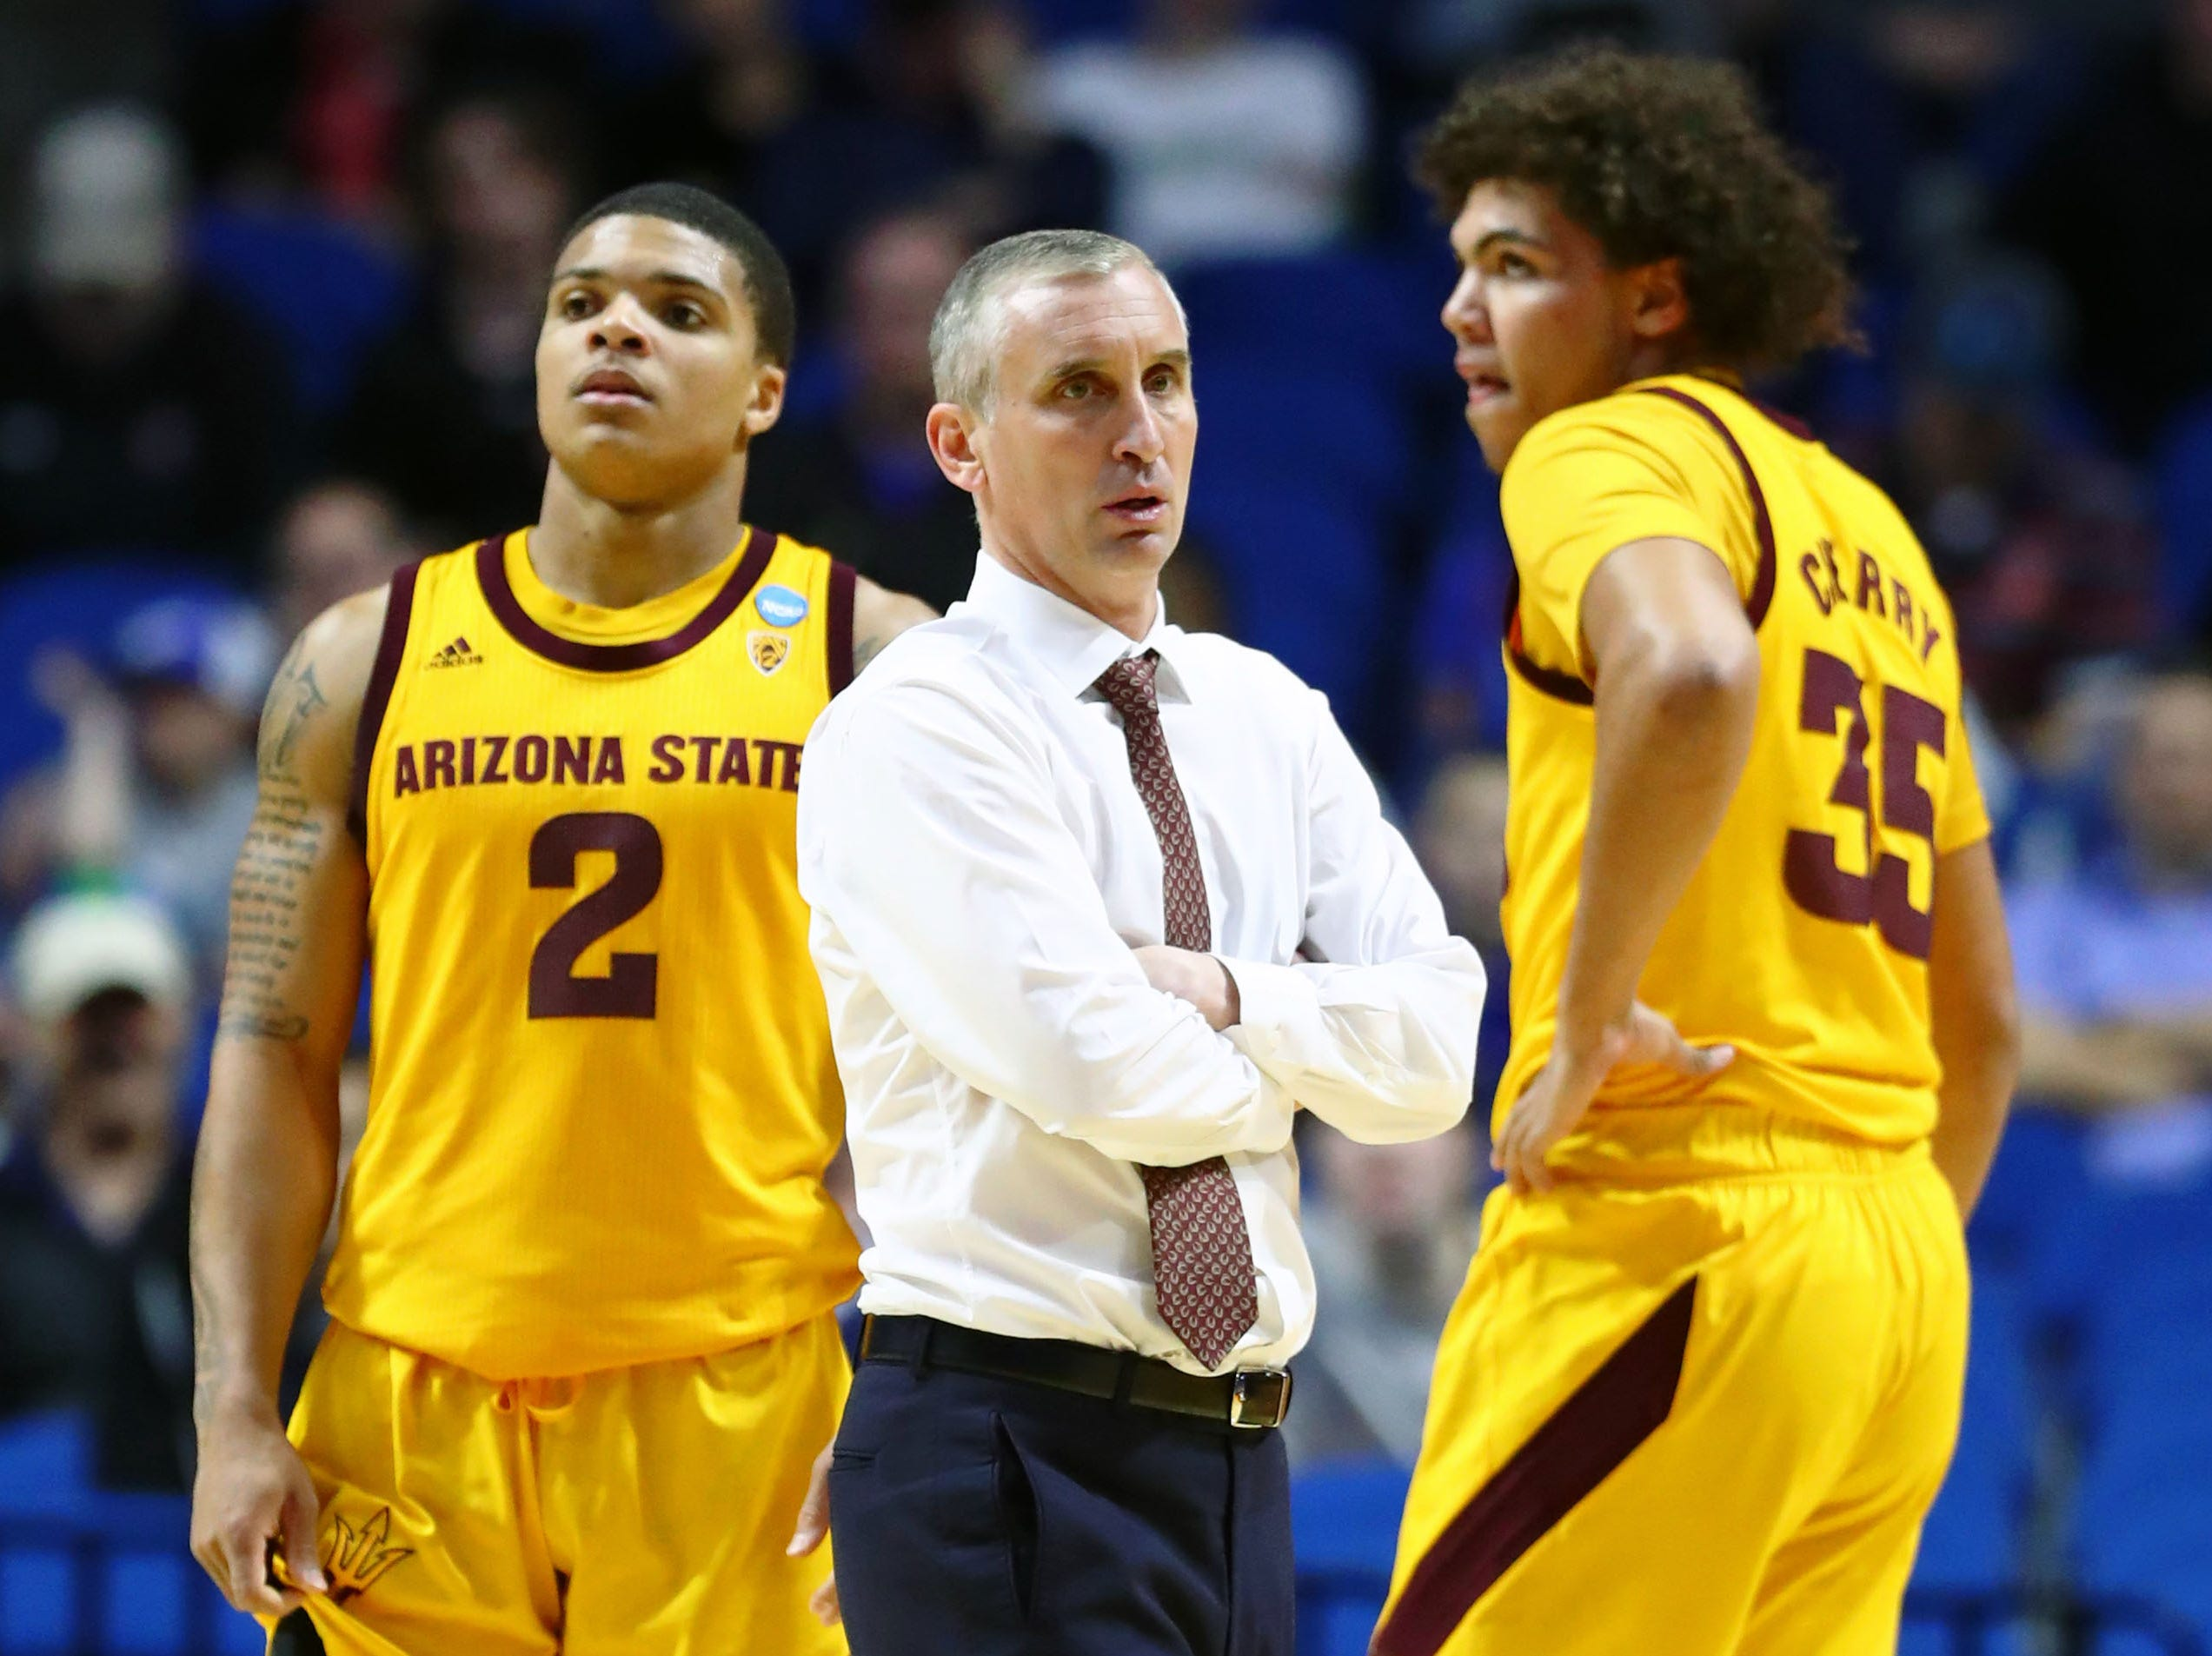 Mar 22, 2019; Tulsa, OK, USA; Arizona State Sun Devils head coach Bobby Hurley talks with forward Taeshon Cherry (35) during a time out in the second half of their game against the Buffalo Bulls in the first round of the 2019 NCAA Tournament at BOK Center. The Buffalo Bulls won 91-74. Mandatory Credit: Mark J. Rebilas-USA TODAY Sports